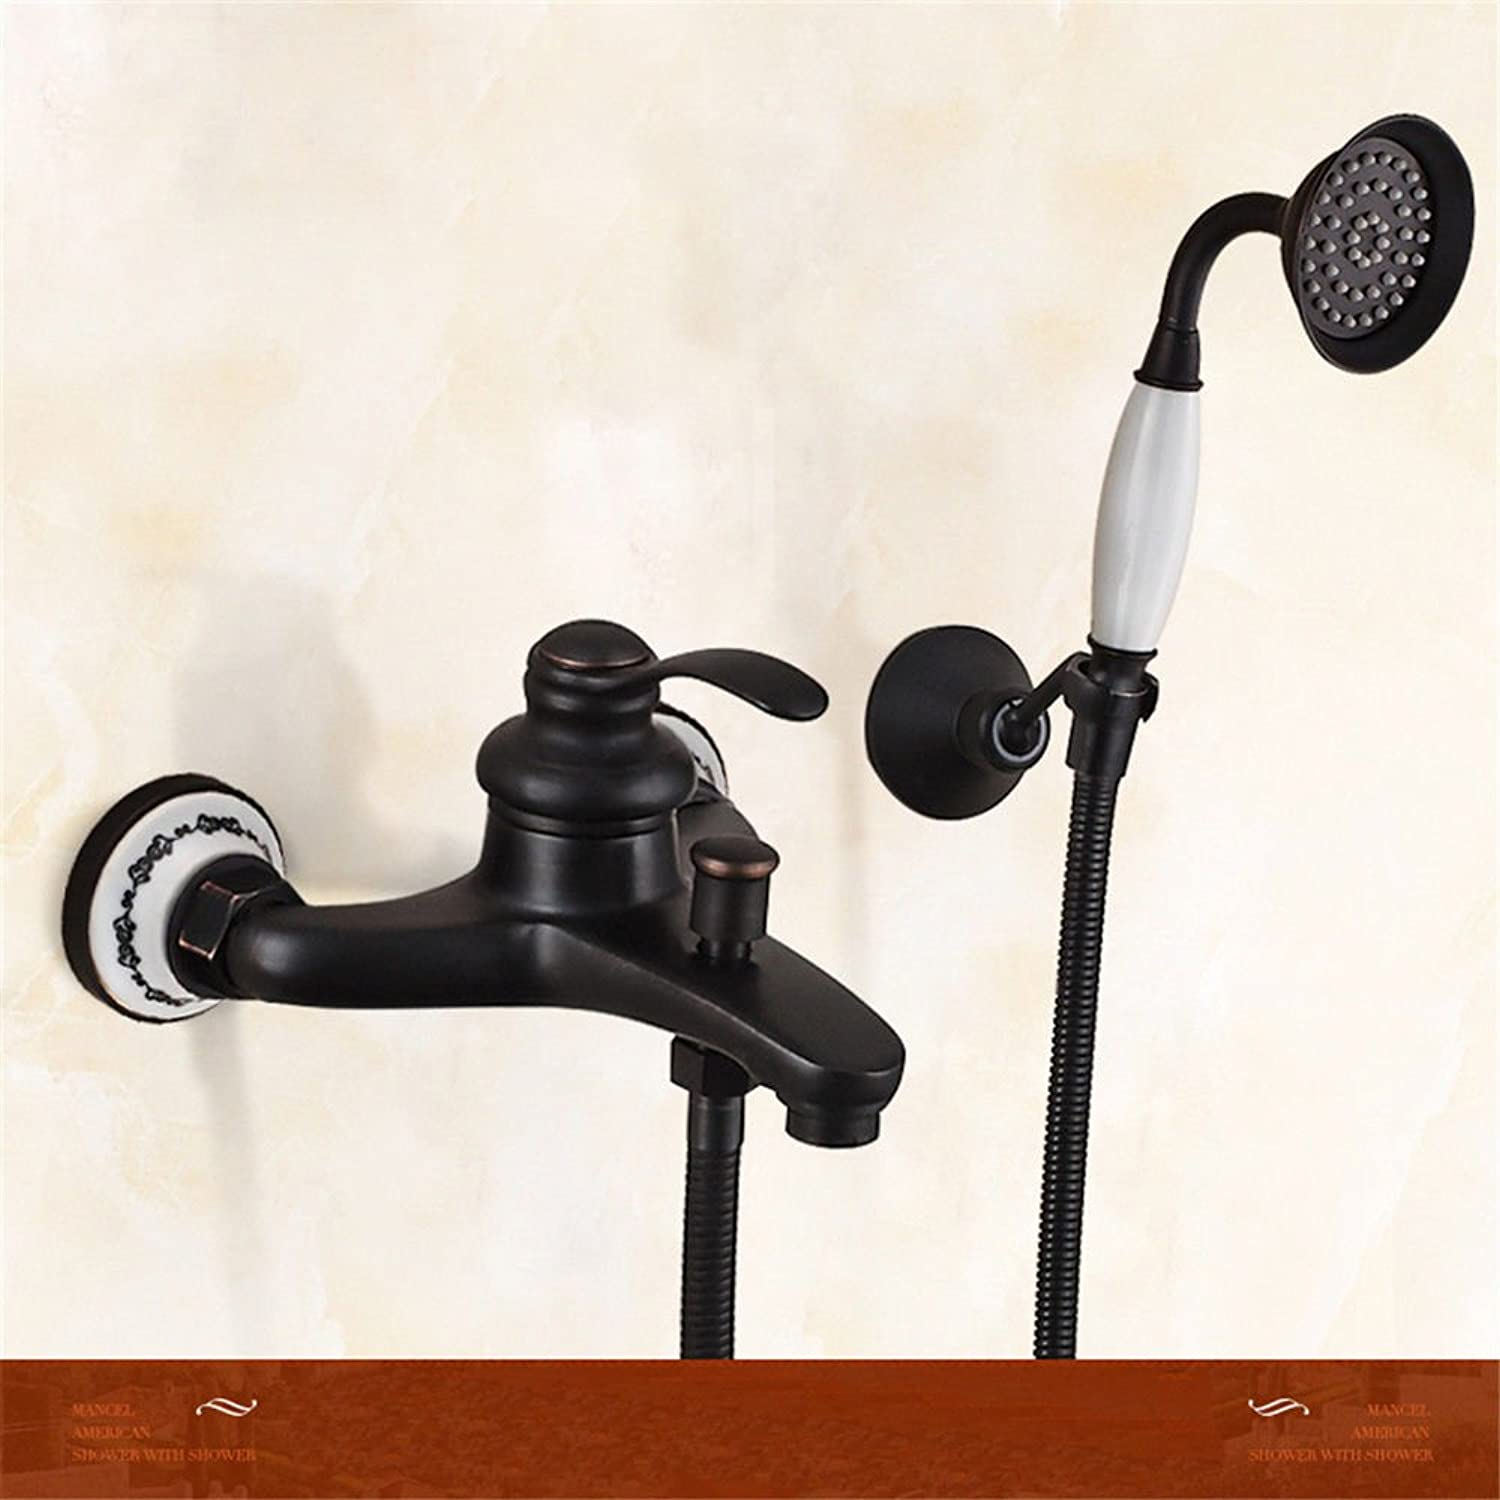 AQMMi Basin Taps Bathroom Sink Faucet Black Shower Set Brass Retro Handheld Shower Wall-Mounted Bathtub Single Lever Bathroom Sink Faucet Basin Mixer Tap